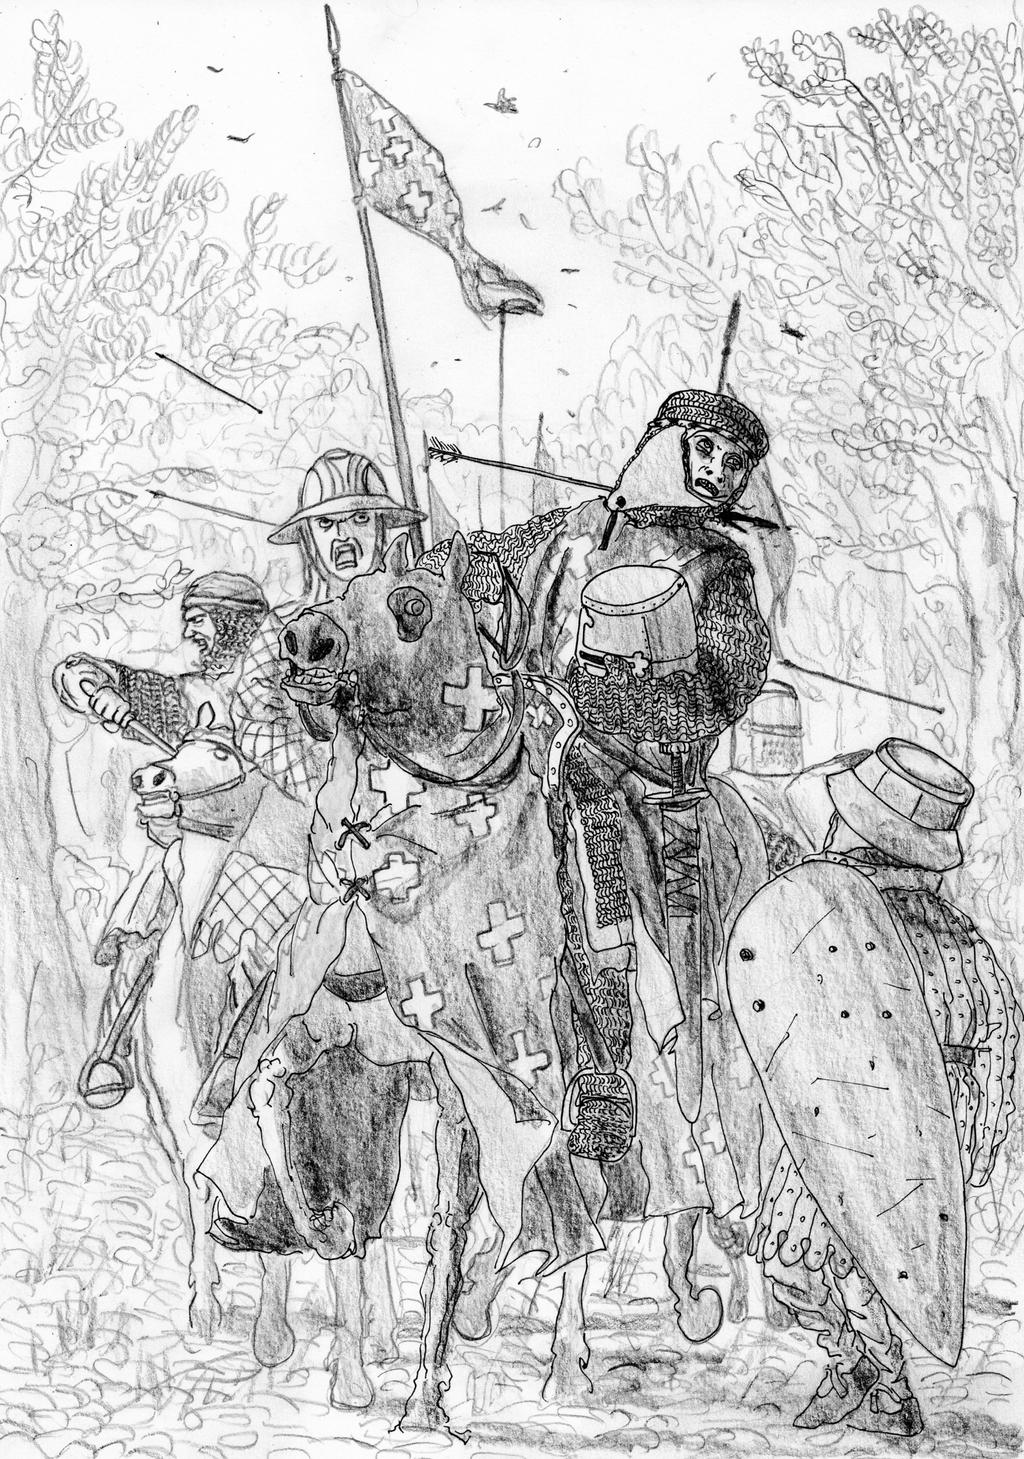 Battle of Cadfan, 1257 AD by FritzVicari